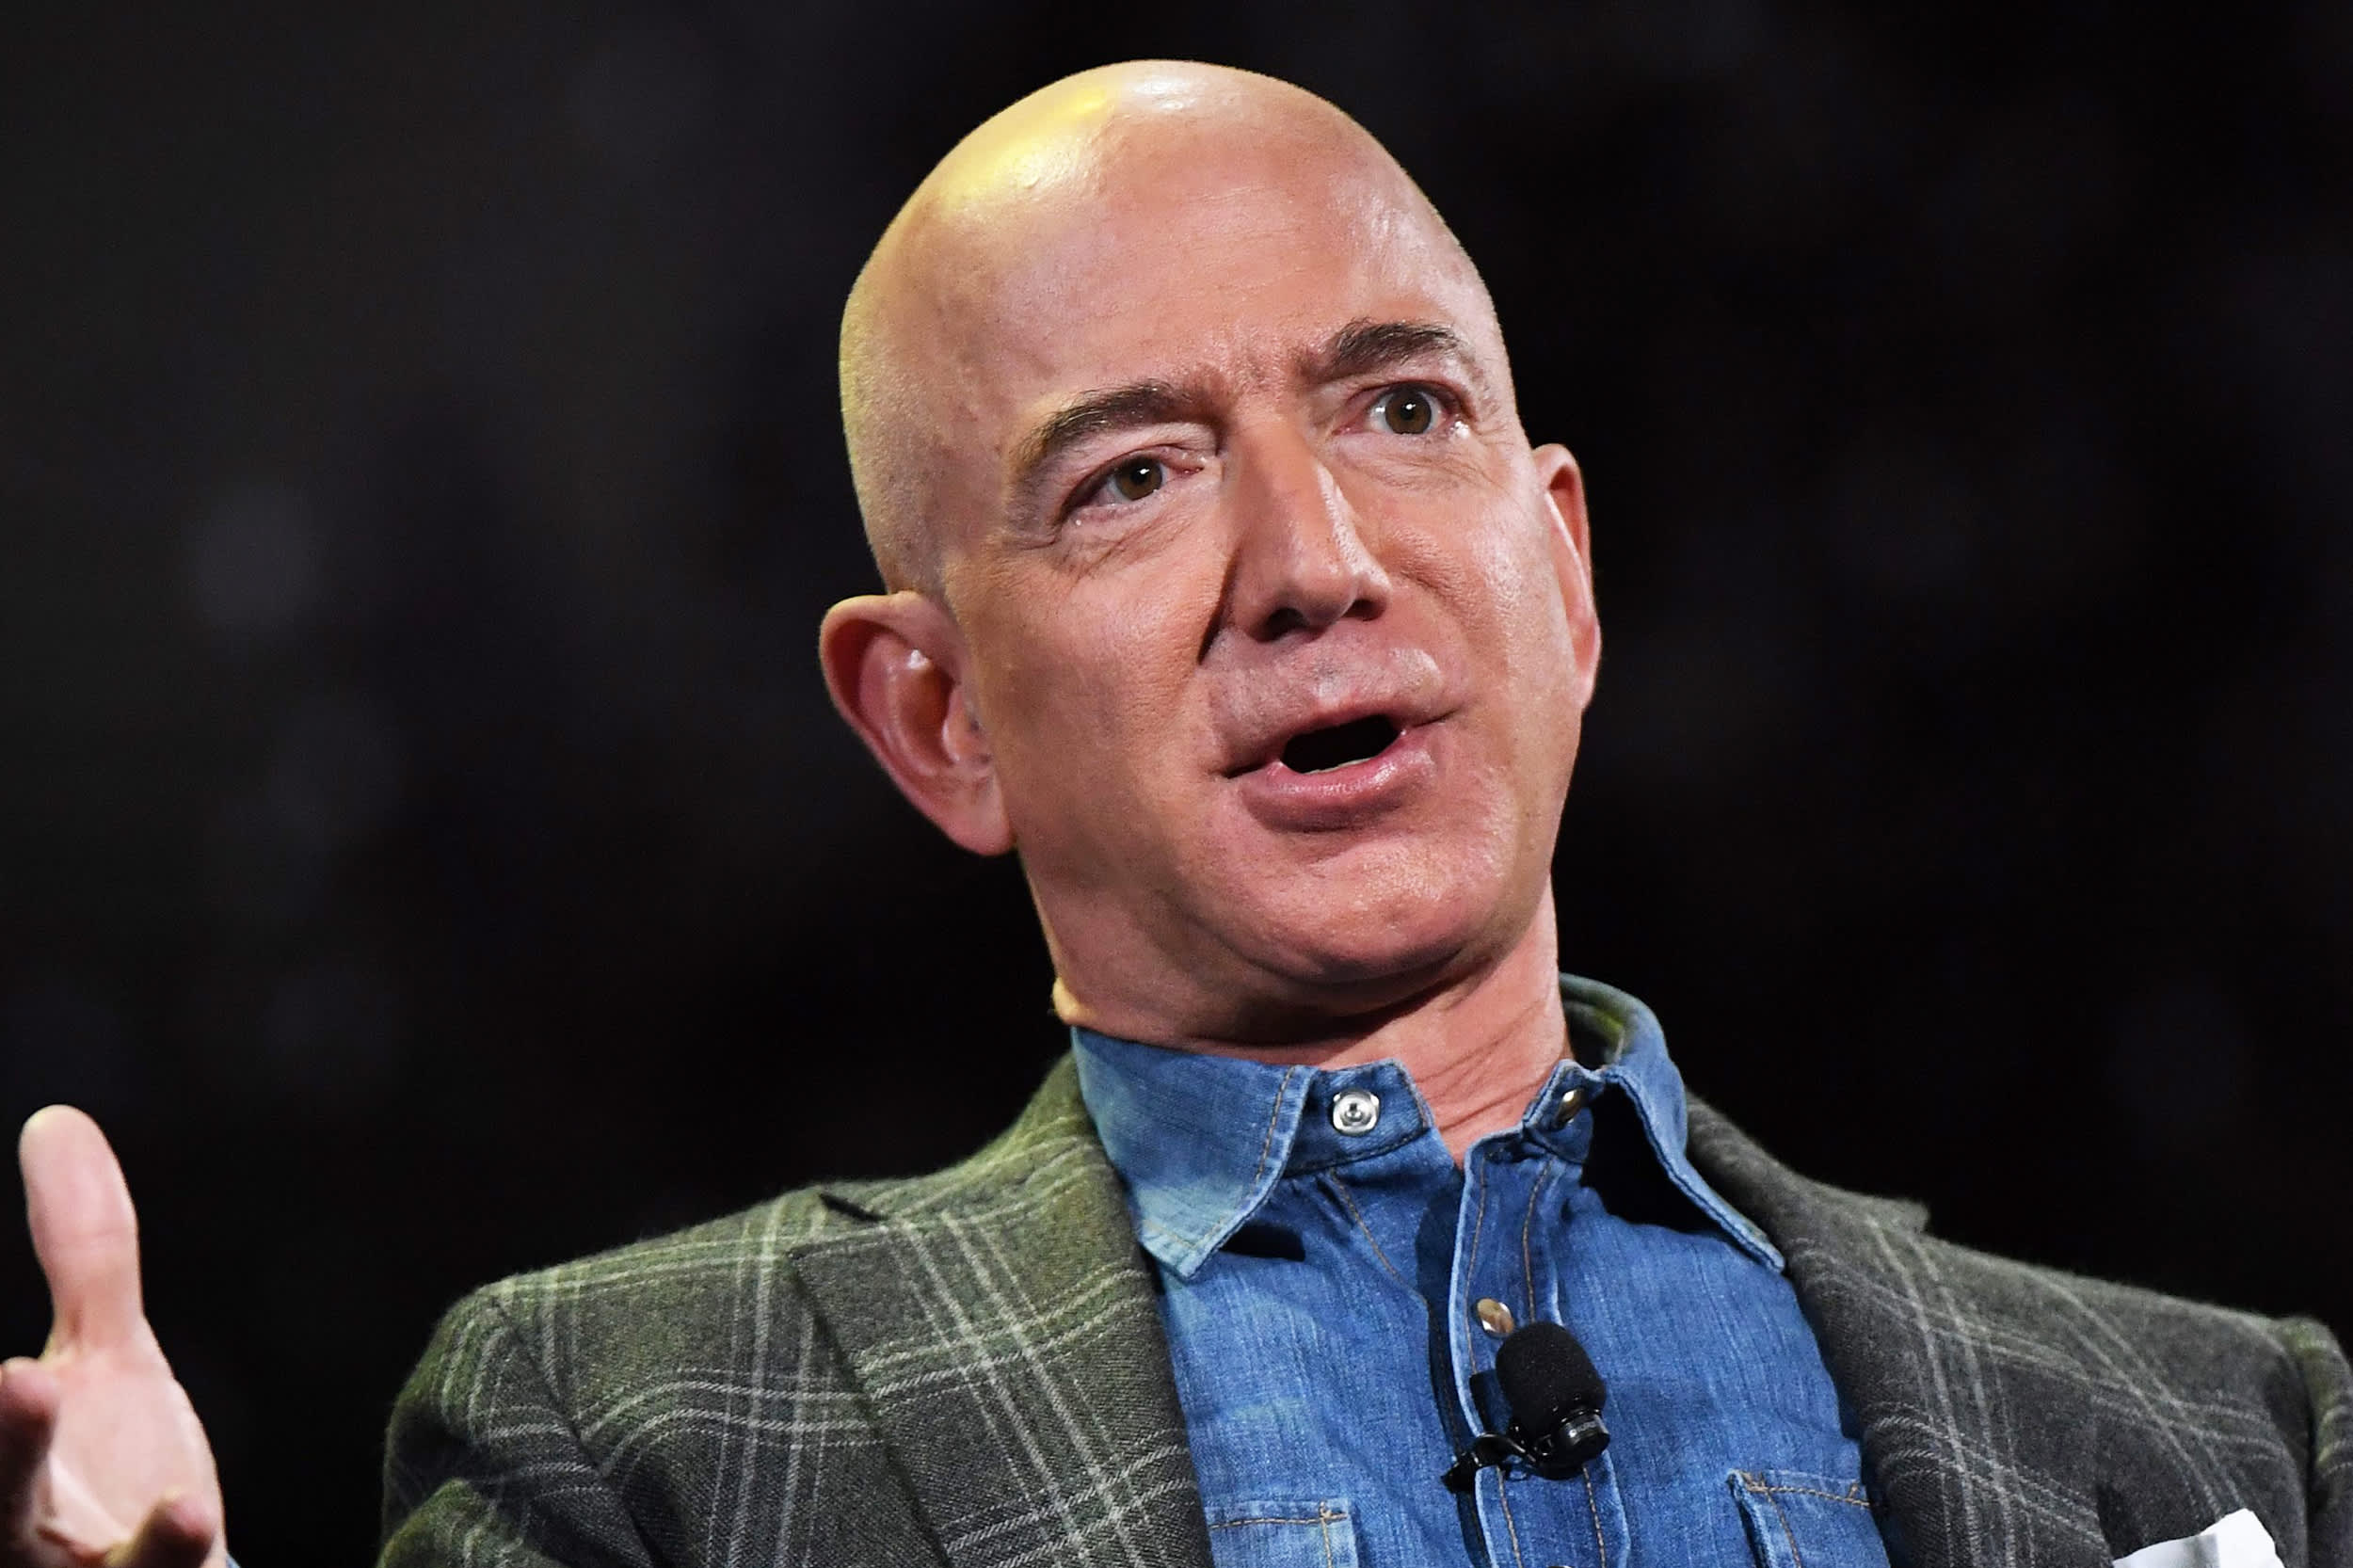 Jeff Bezos' job listing for Amazon's first hire: You have to exceed what 'most competent people think possible'